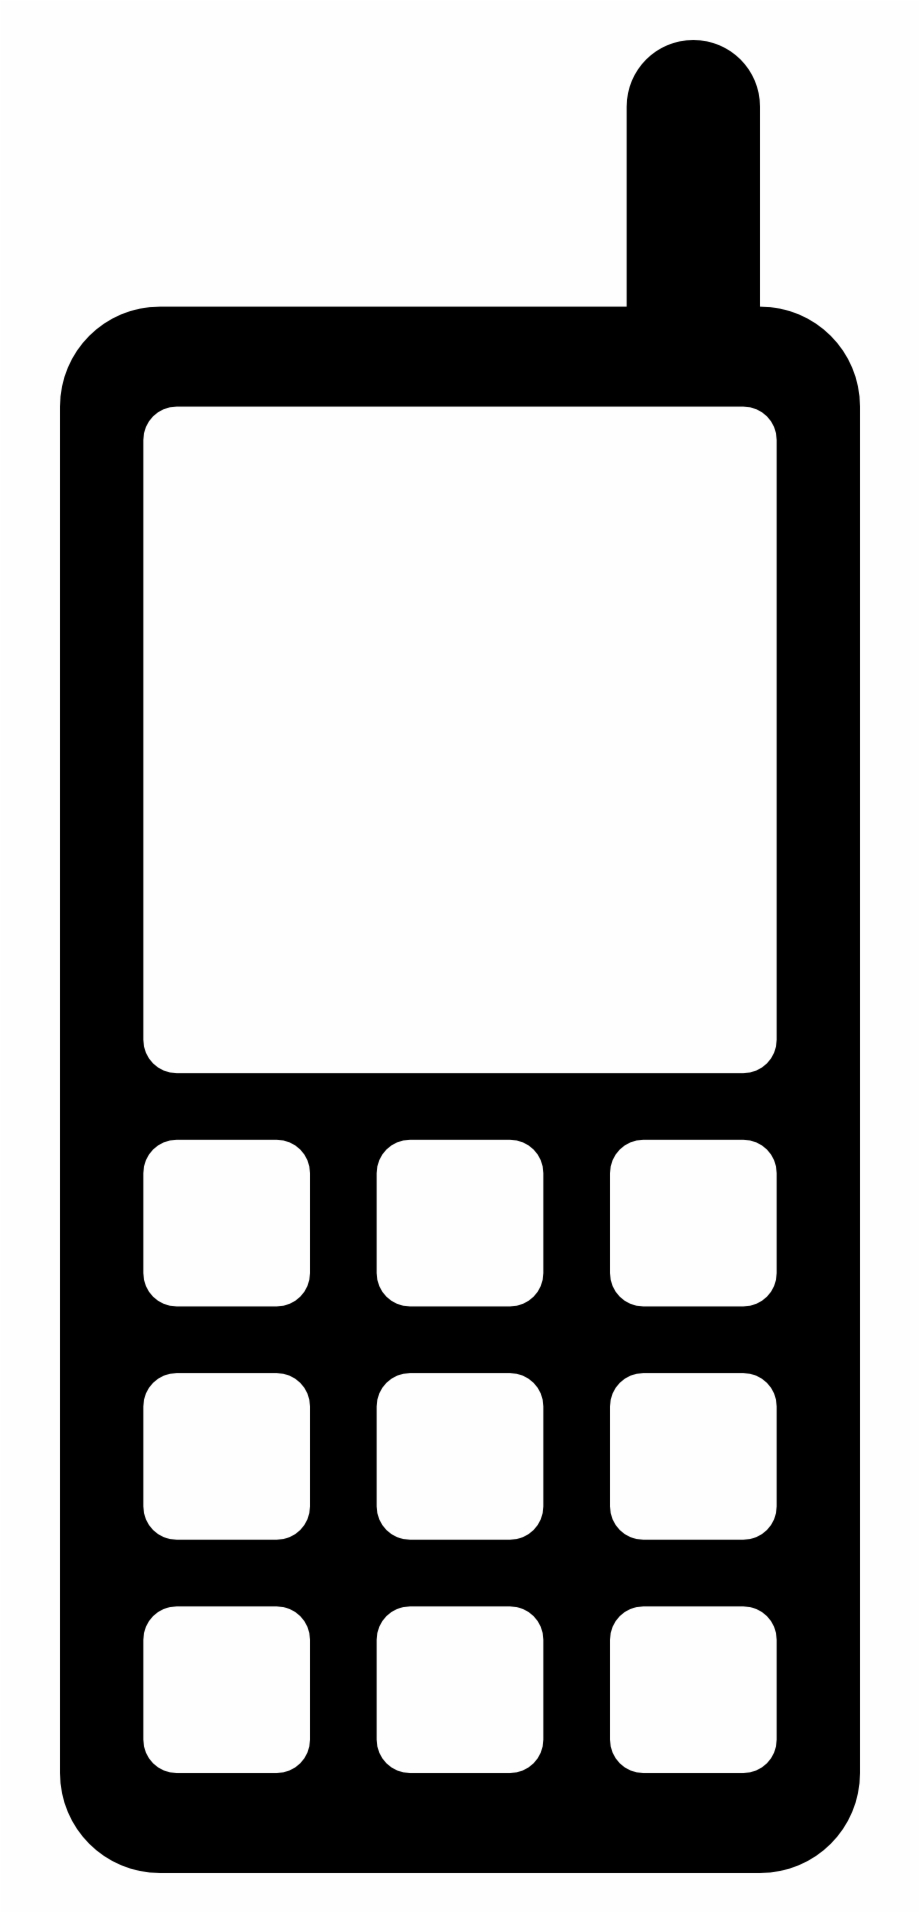 Free Icons Png Mobile Phone Icon Transparent Png Download 24339 Vippng